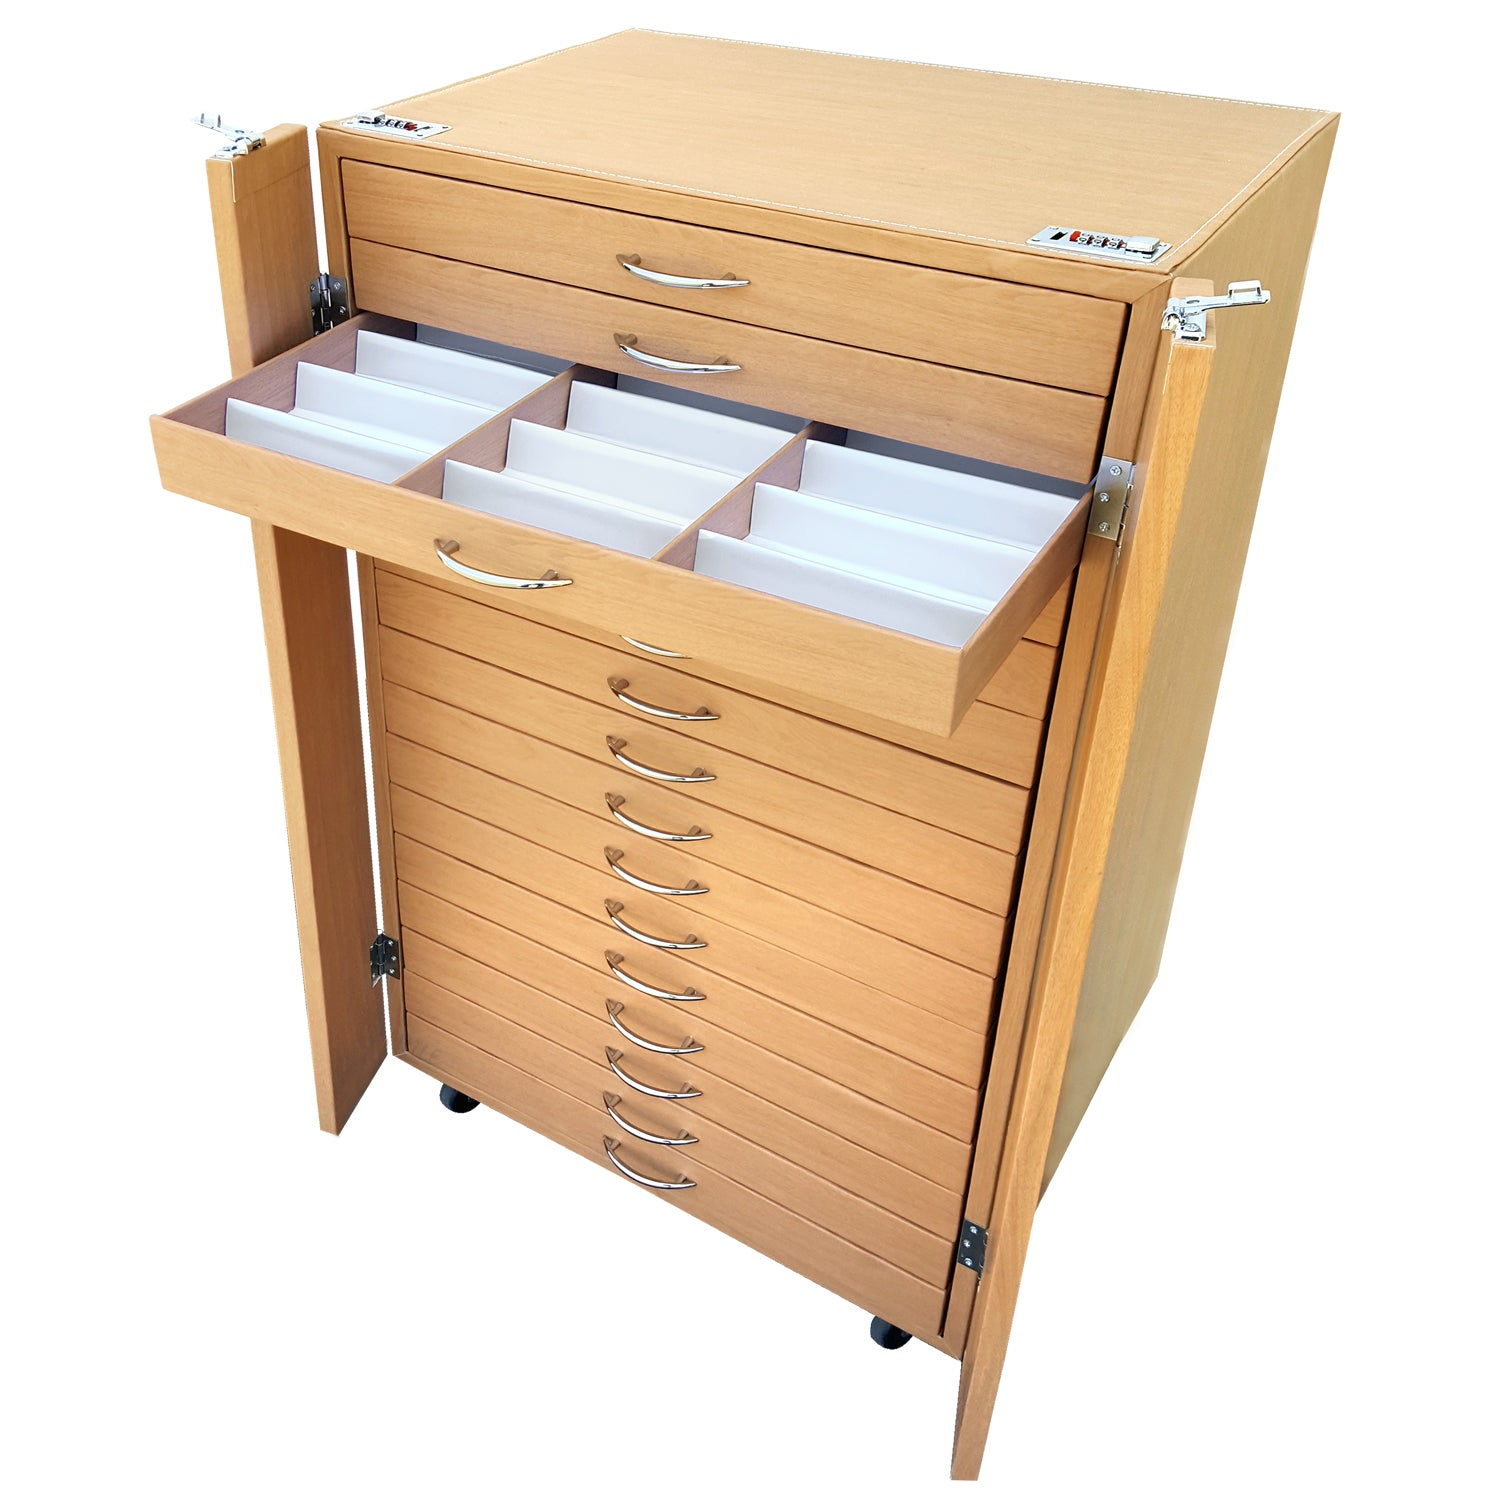 #D206-16LTBR  288 Pairs Frame Storage Cabinet- Eyewear & Optical glasses Display - with Lock and Wheels | APEX International